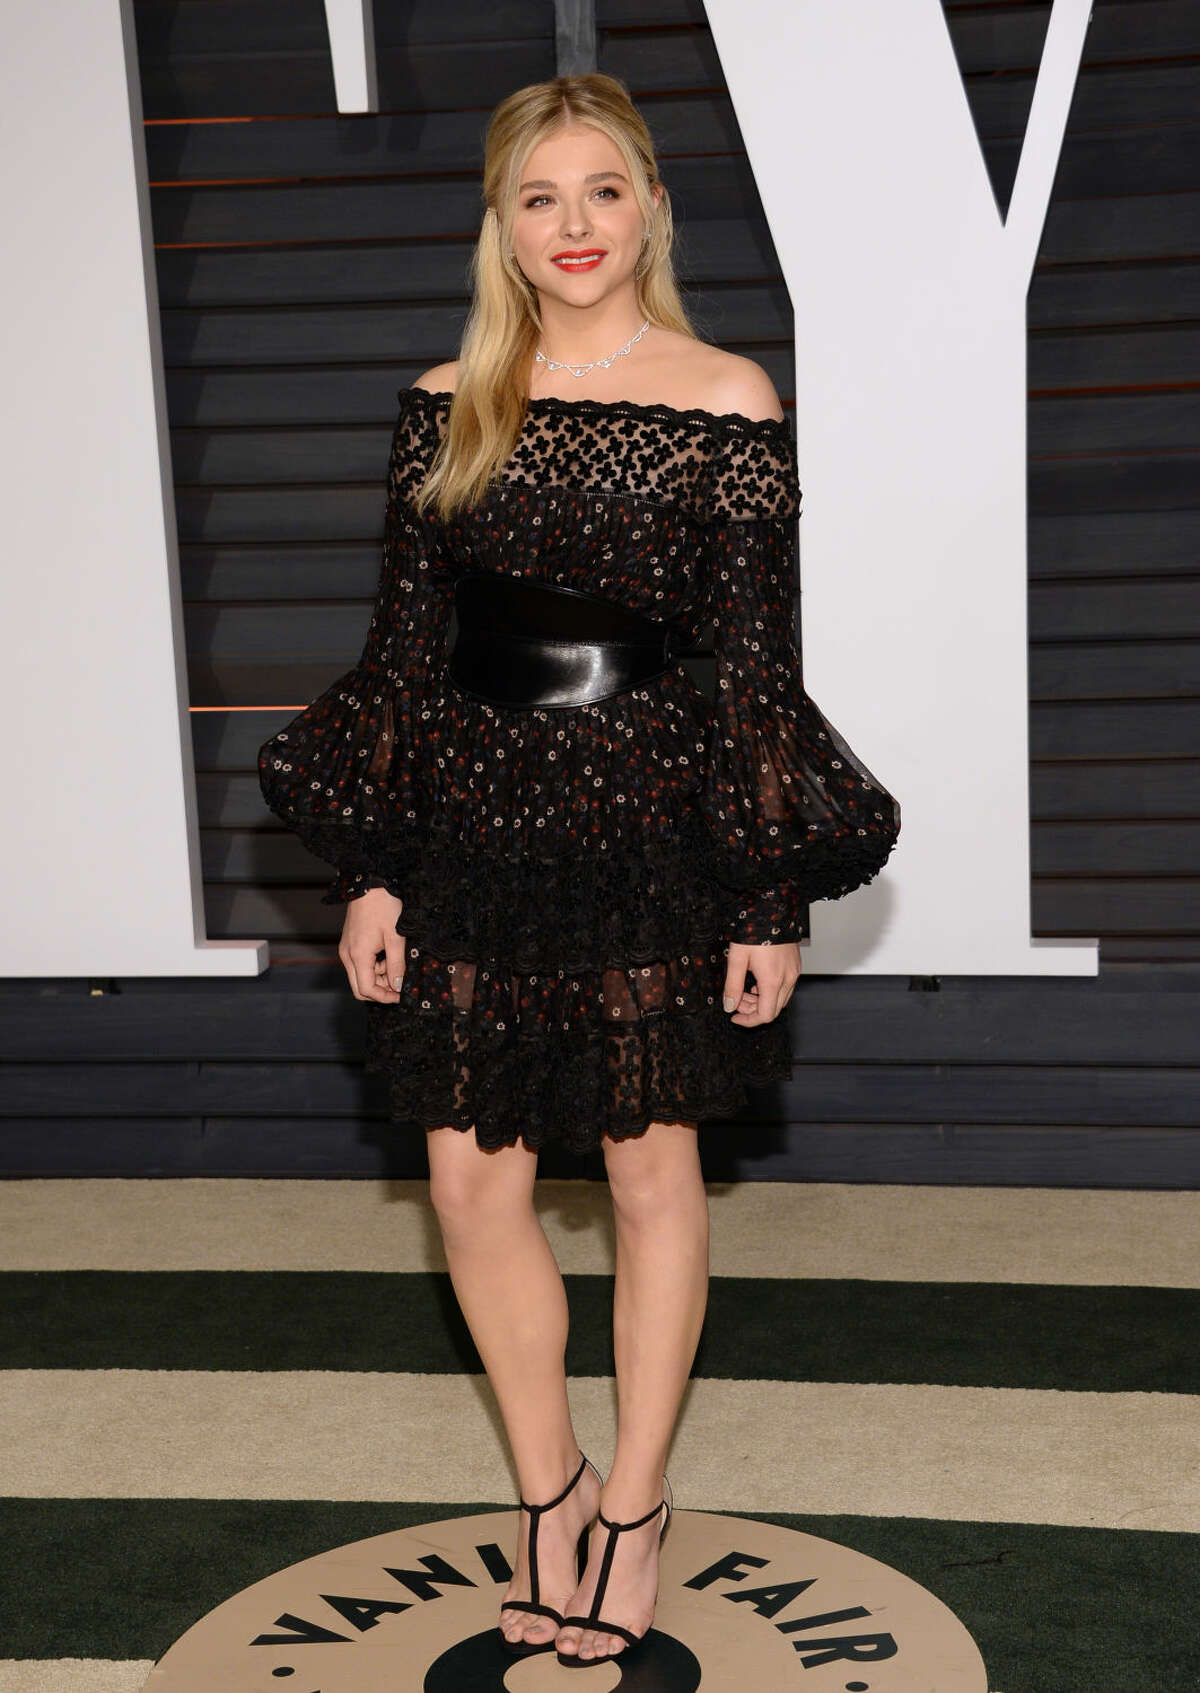 Chloe Grace Moretz arrives at the 2015 Vanity Fair Oscar Party on Sunday, Feb. 22, 2015, in Beverly Hills, Calif. (Photo by Evan Agostini/Invision/AP)